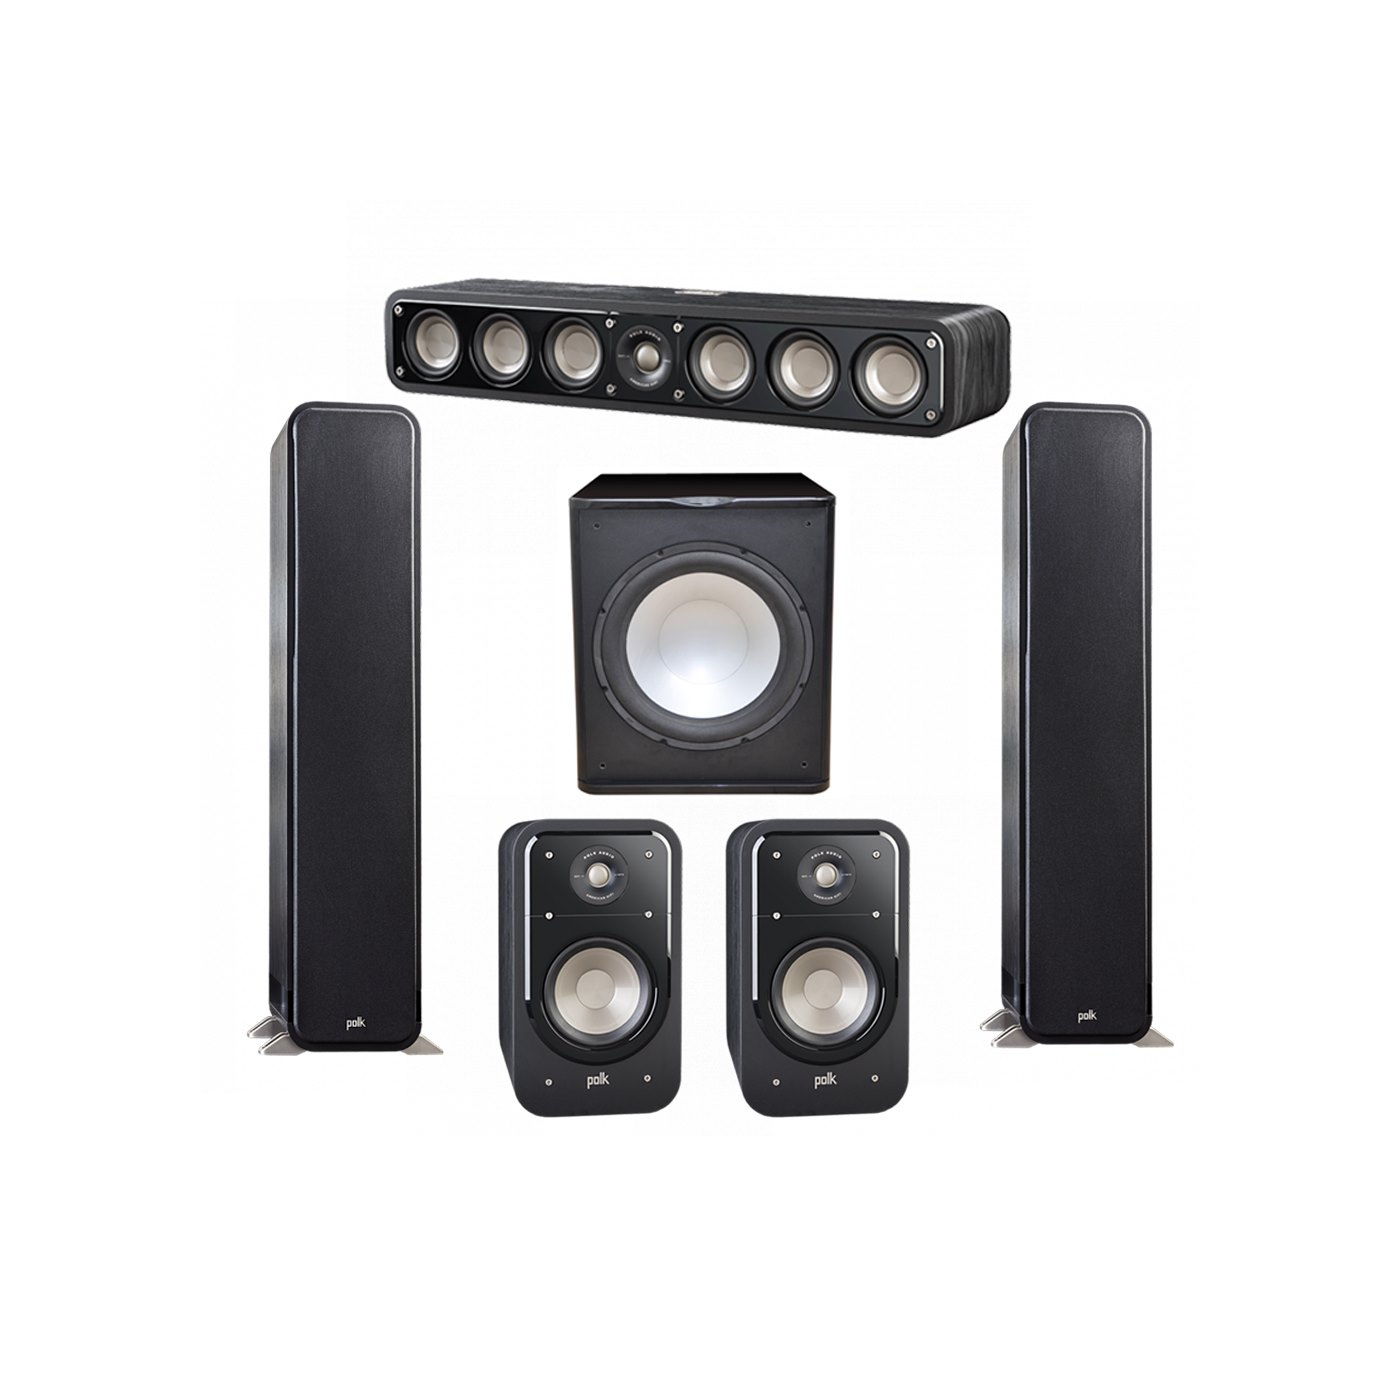 Polk Audio Signature 5.1 System with 2 S55 Tower Speaker, 1 Polk S35 Center Speaker, 2 Polk S20 Bookshelf Speaker, 1 Premier Acoustic PA-150 Powered Subwoofer